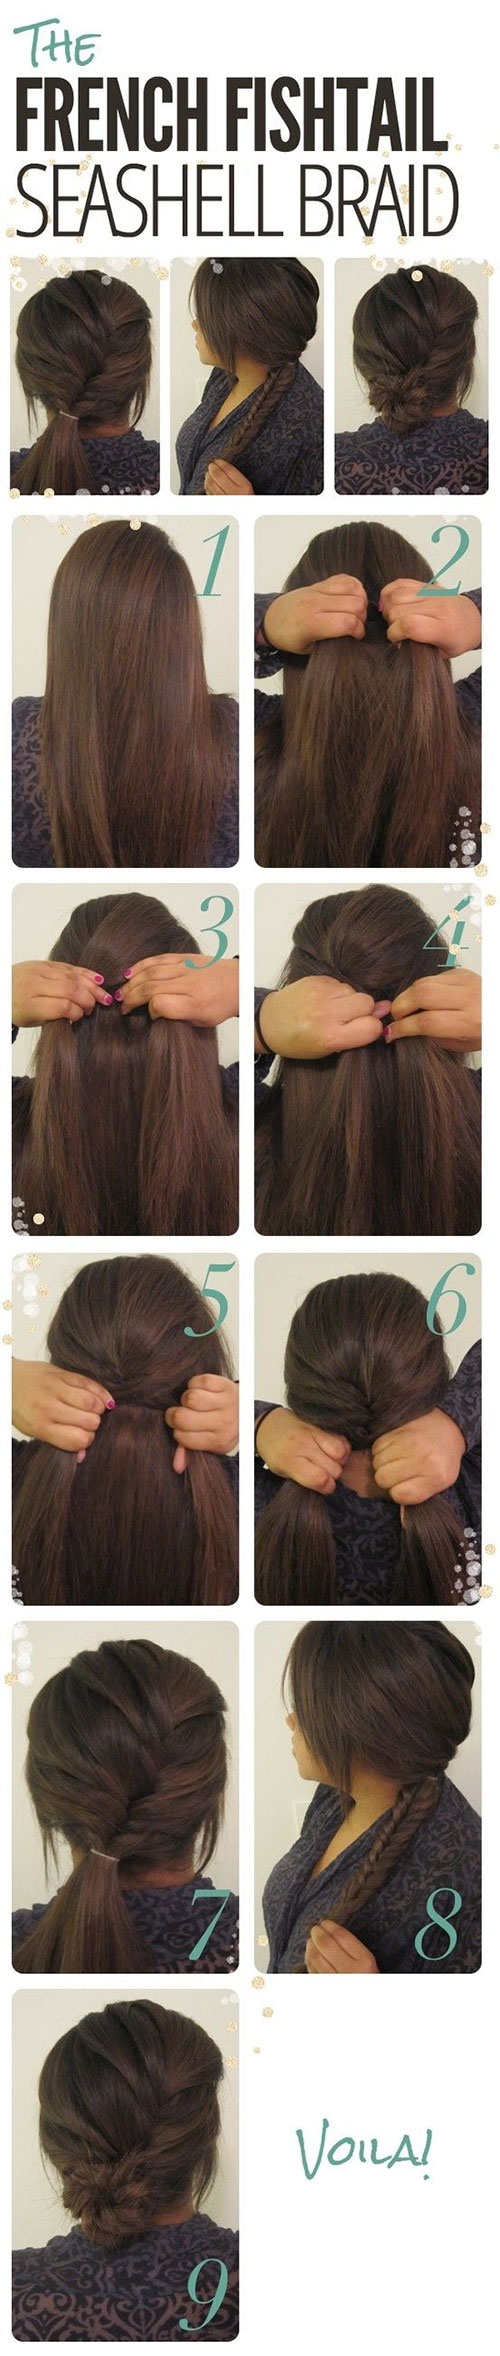 20-Easy-Step-By-Step-Summer-Braids-Style-Tutorials-For-Beginners-2015-15